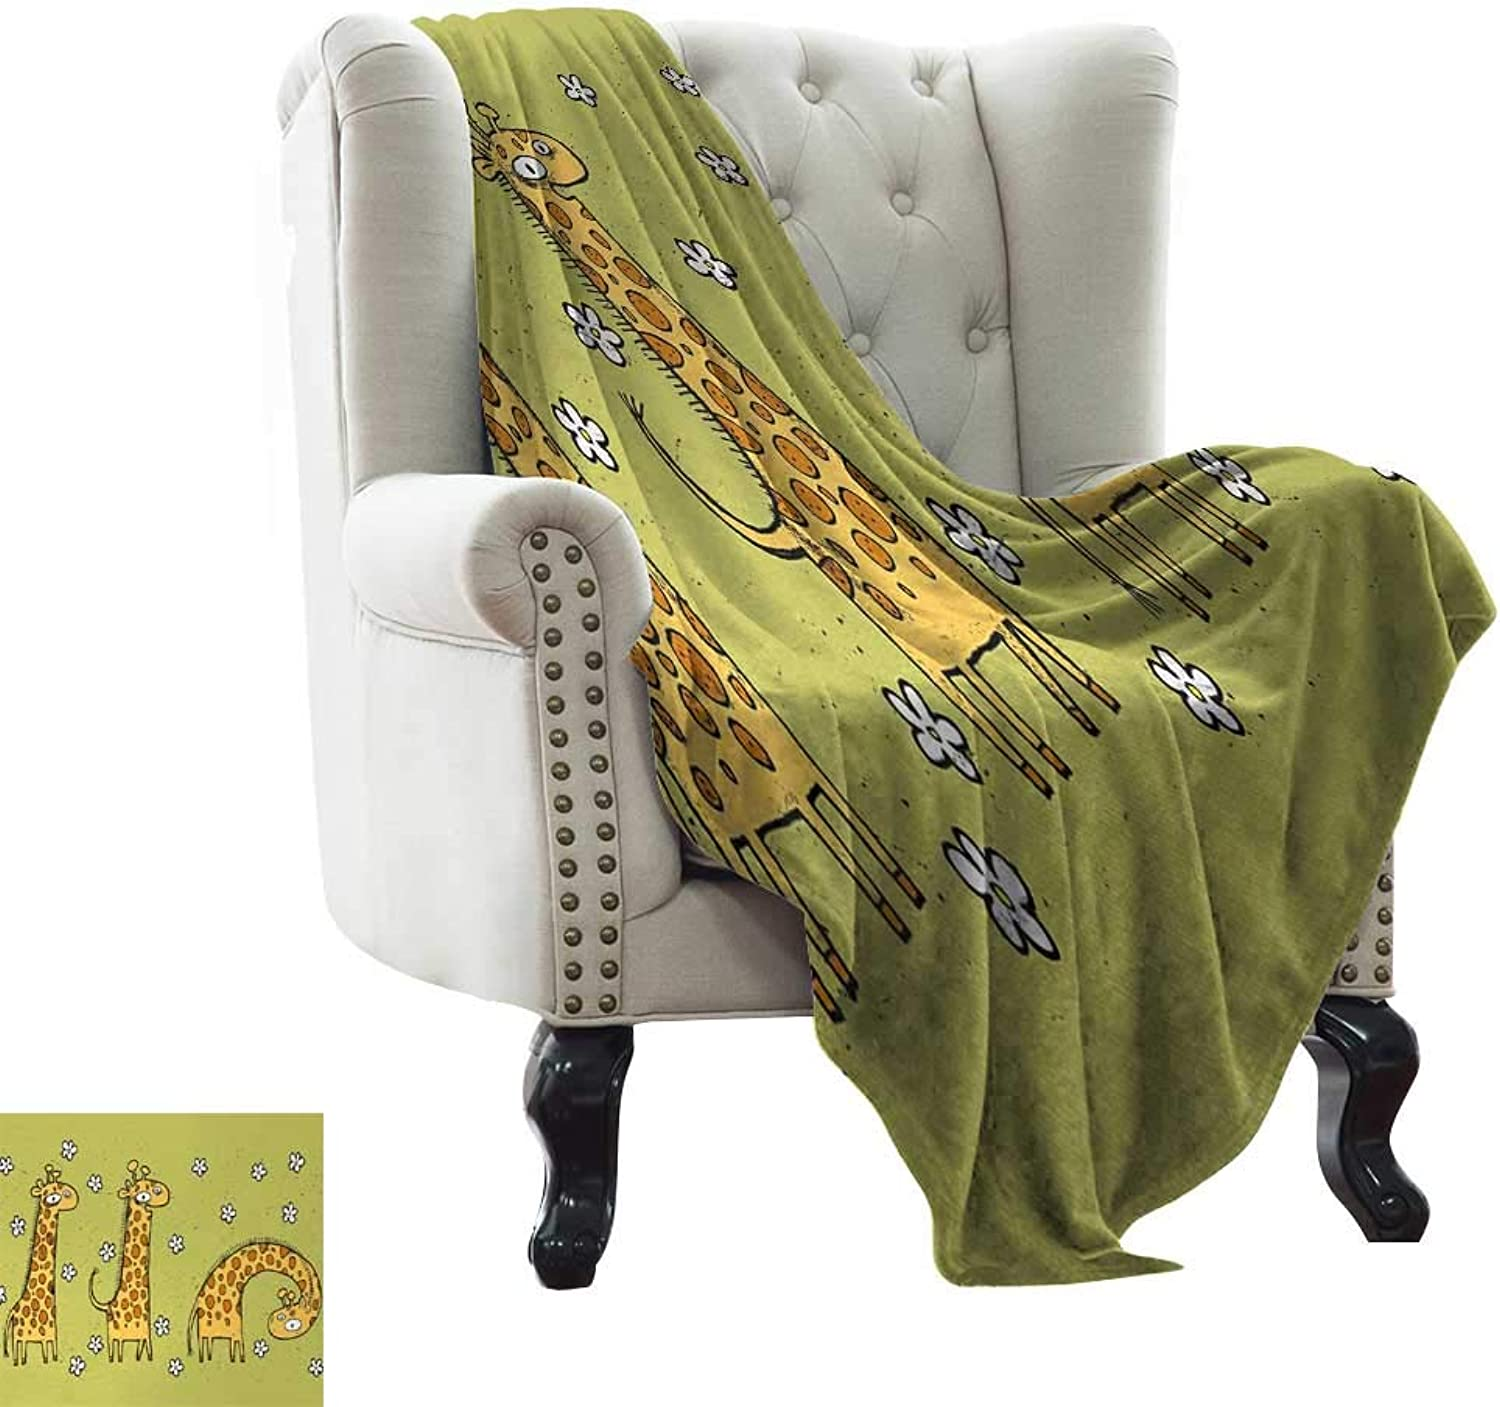 Throw Blanket Animal,Hand Drawn Illustration of Giraffes on Background with Flowers,Avocado Green and Light Caramel Weighted for Adults Kids, Better Deeper Sleep 50 x60